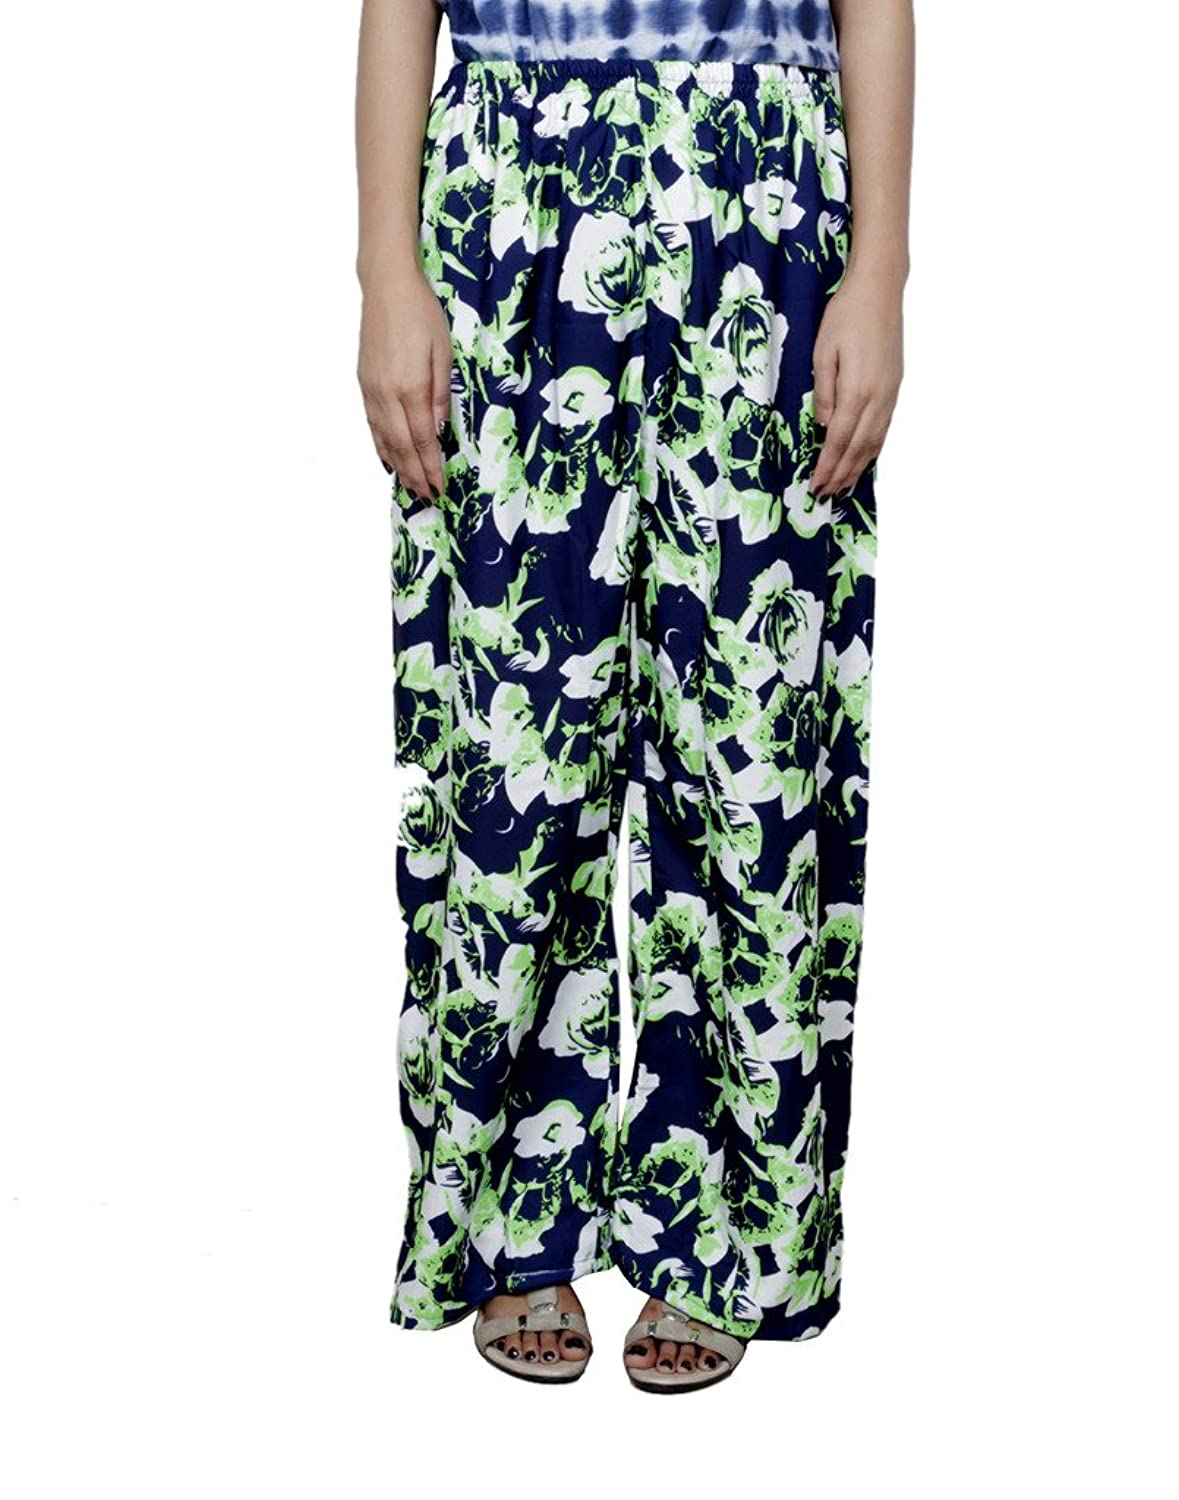 Indistar Women's Polyester Blue and Green Palazoo Pants_Free Size